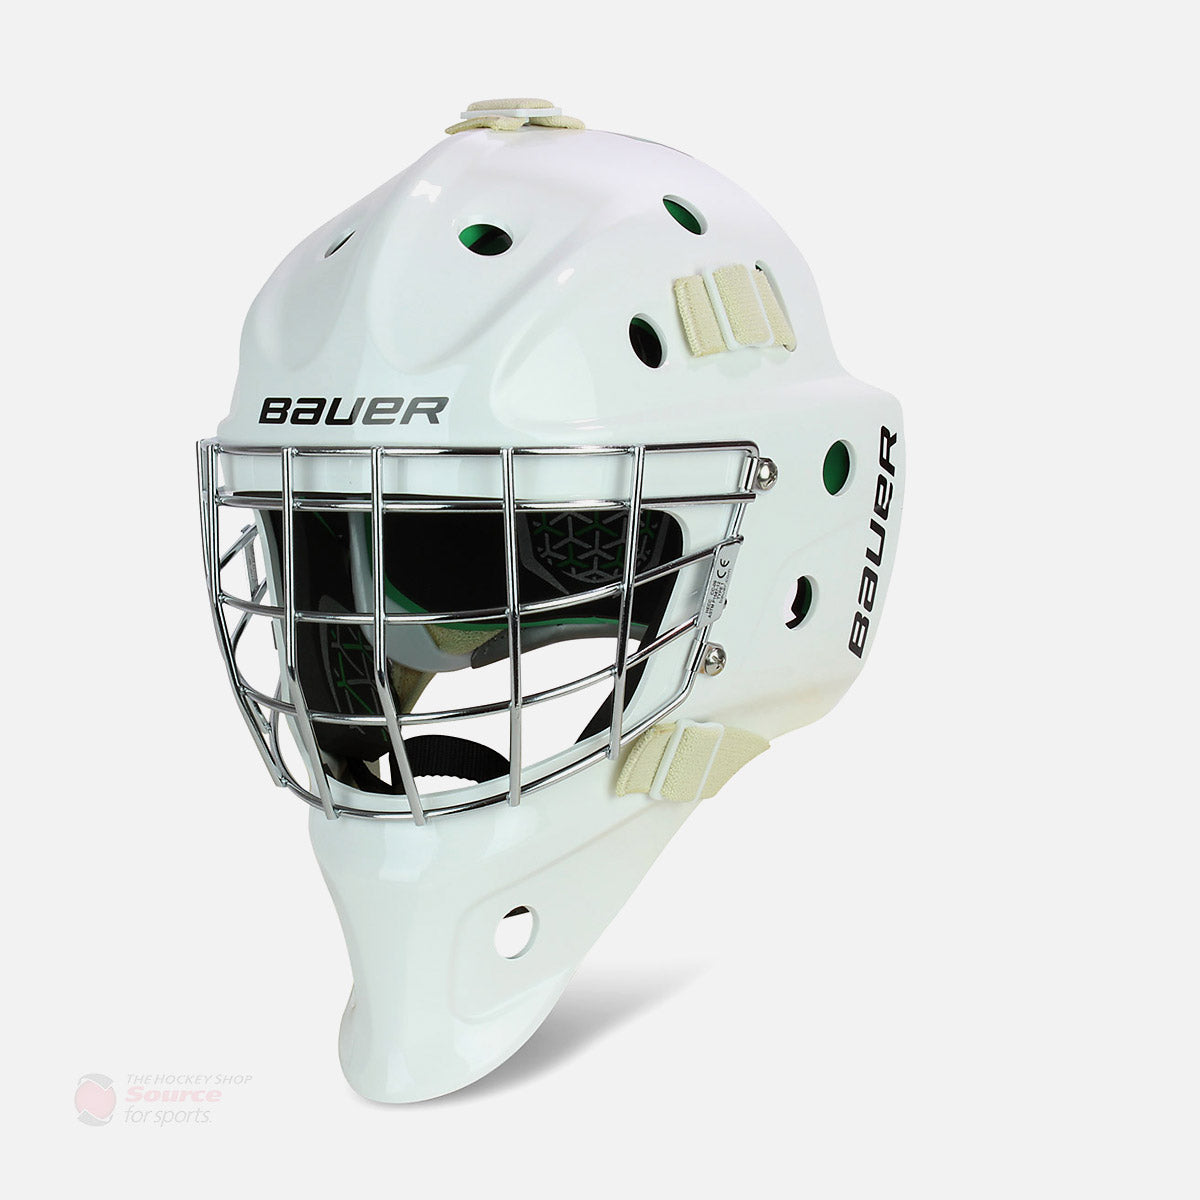 Bauer NME 4 Junior Goalie Mask - White